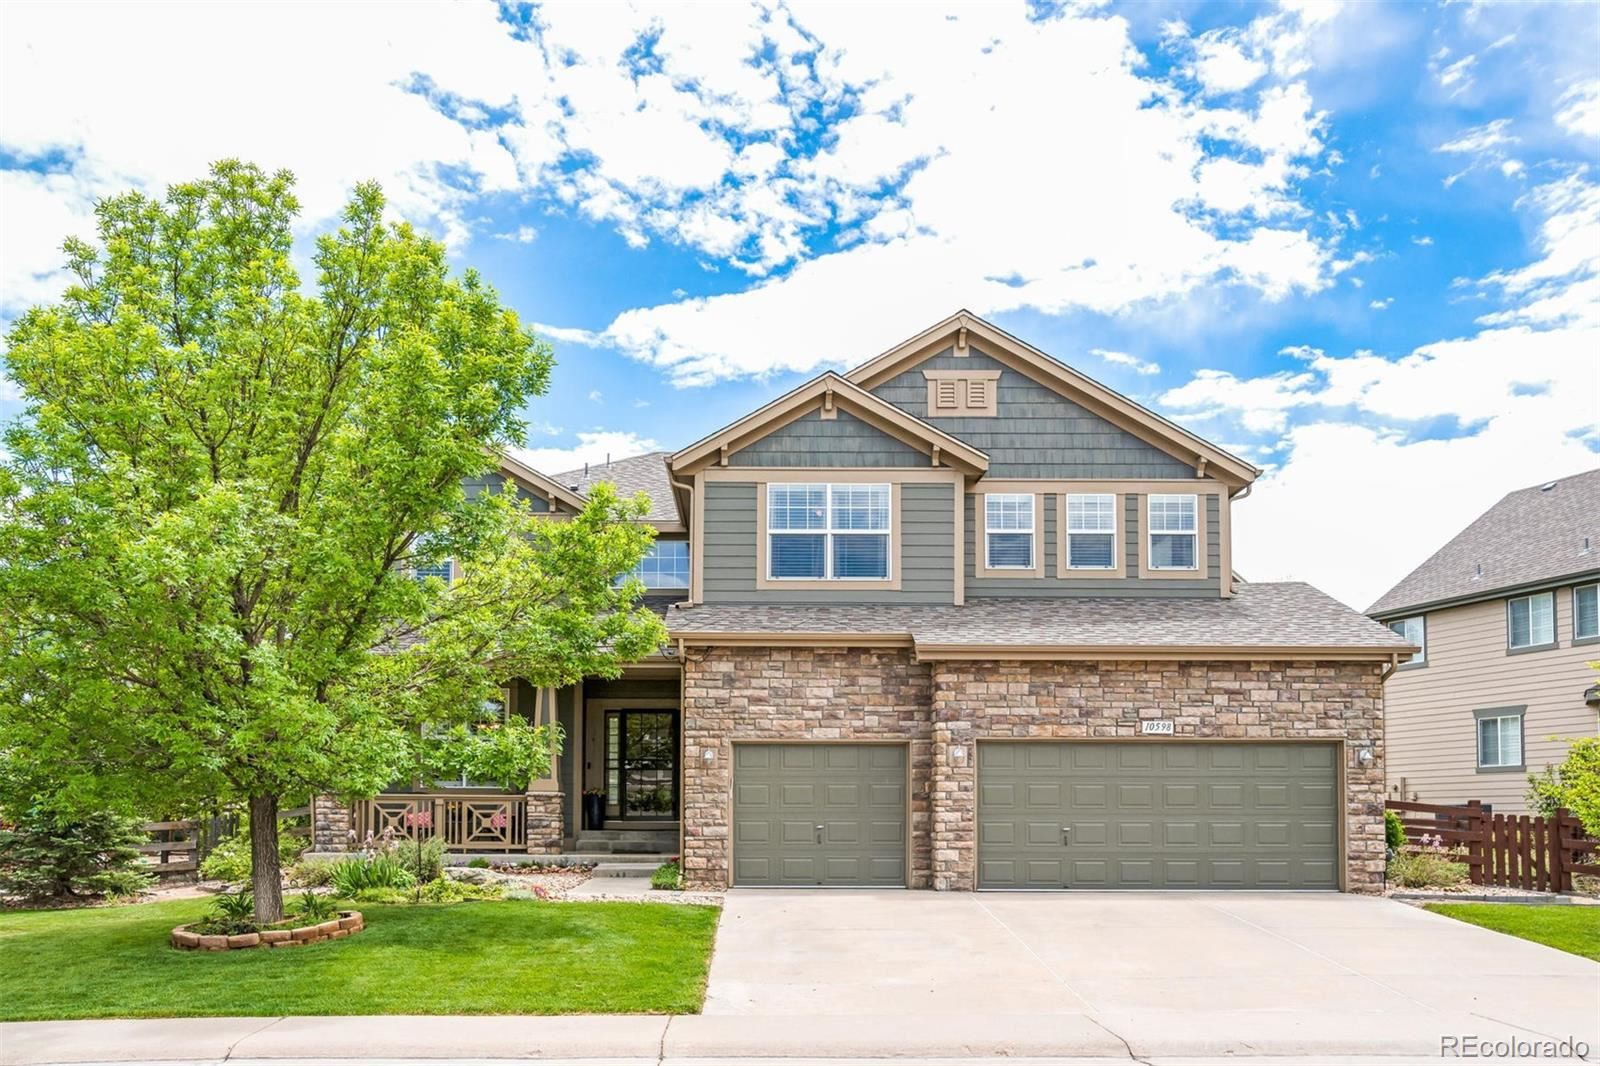 10598  Kicking Horse Drive, Littleton, CO 80125 - #: 6486591